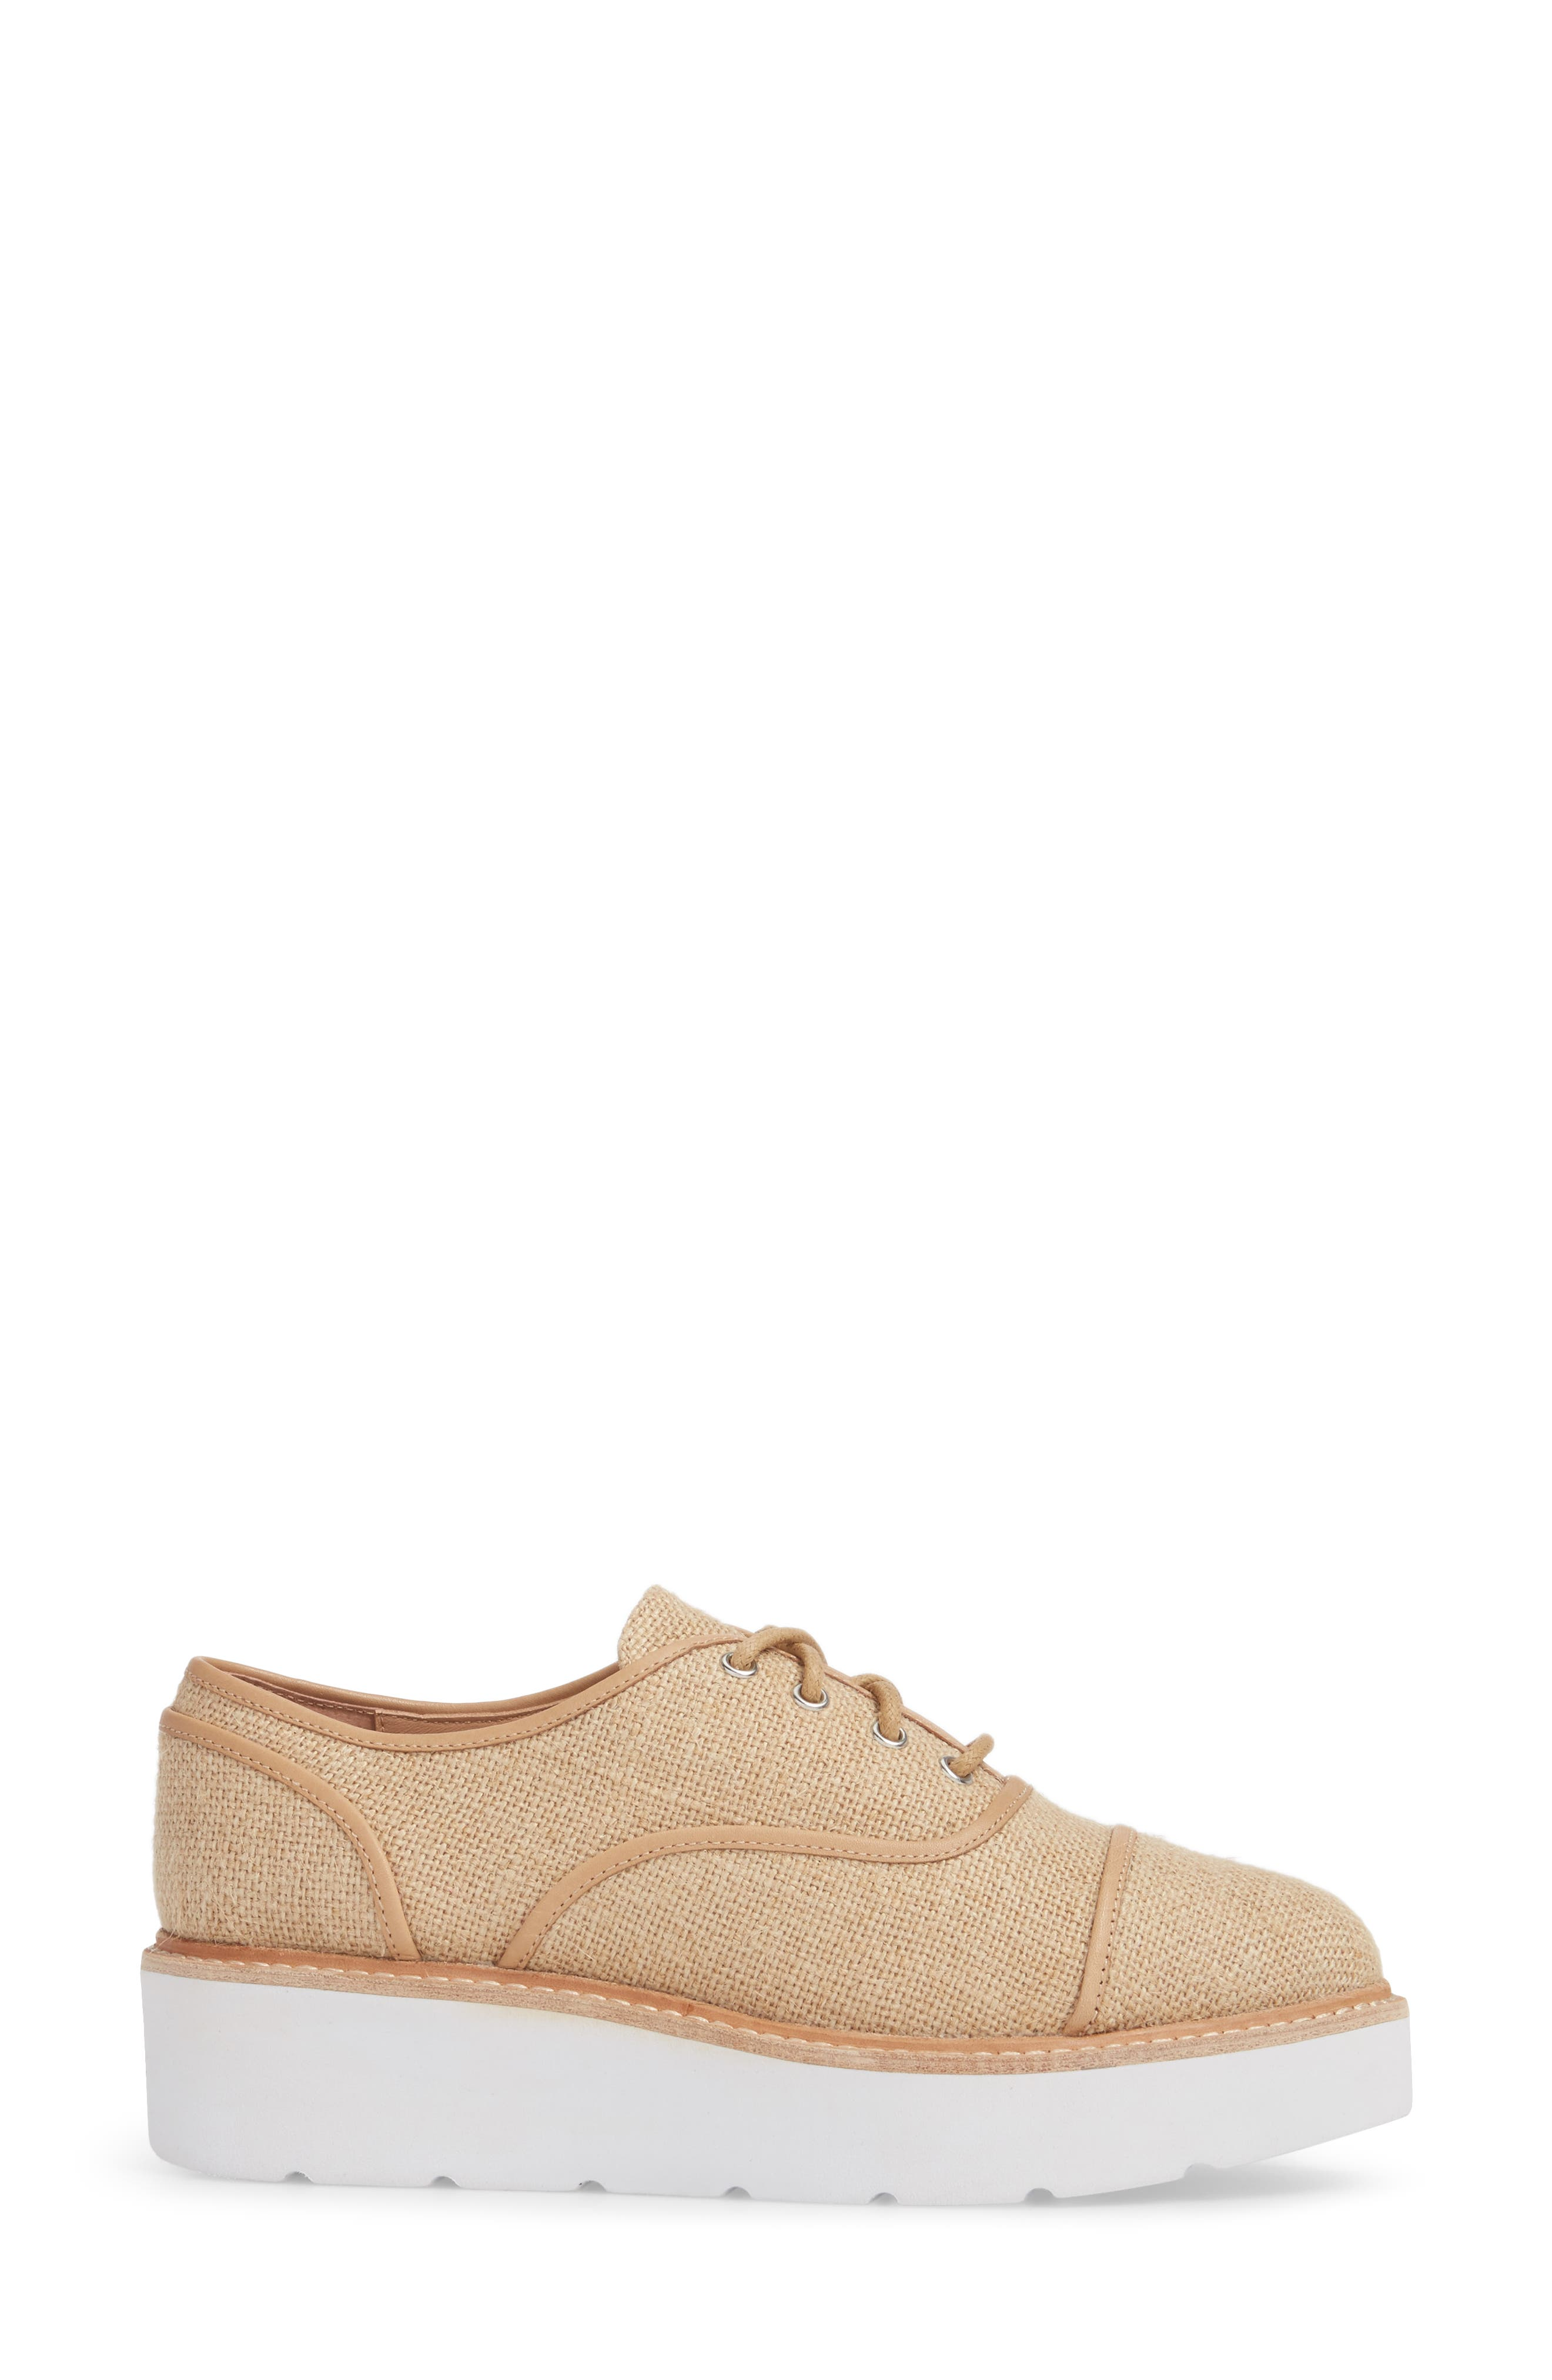 Mavis Cap Toe Platform Sneaker,                             Alternate thumbnail 3, color,                             250